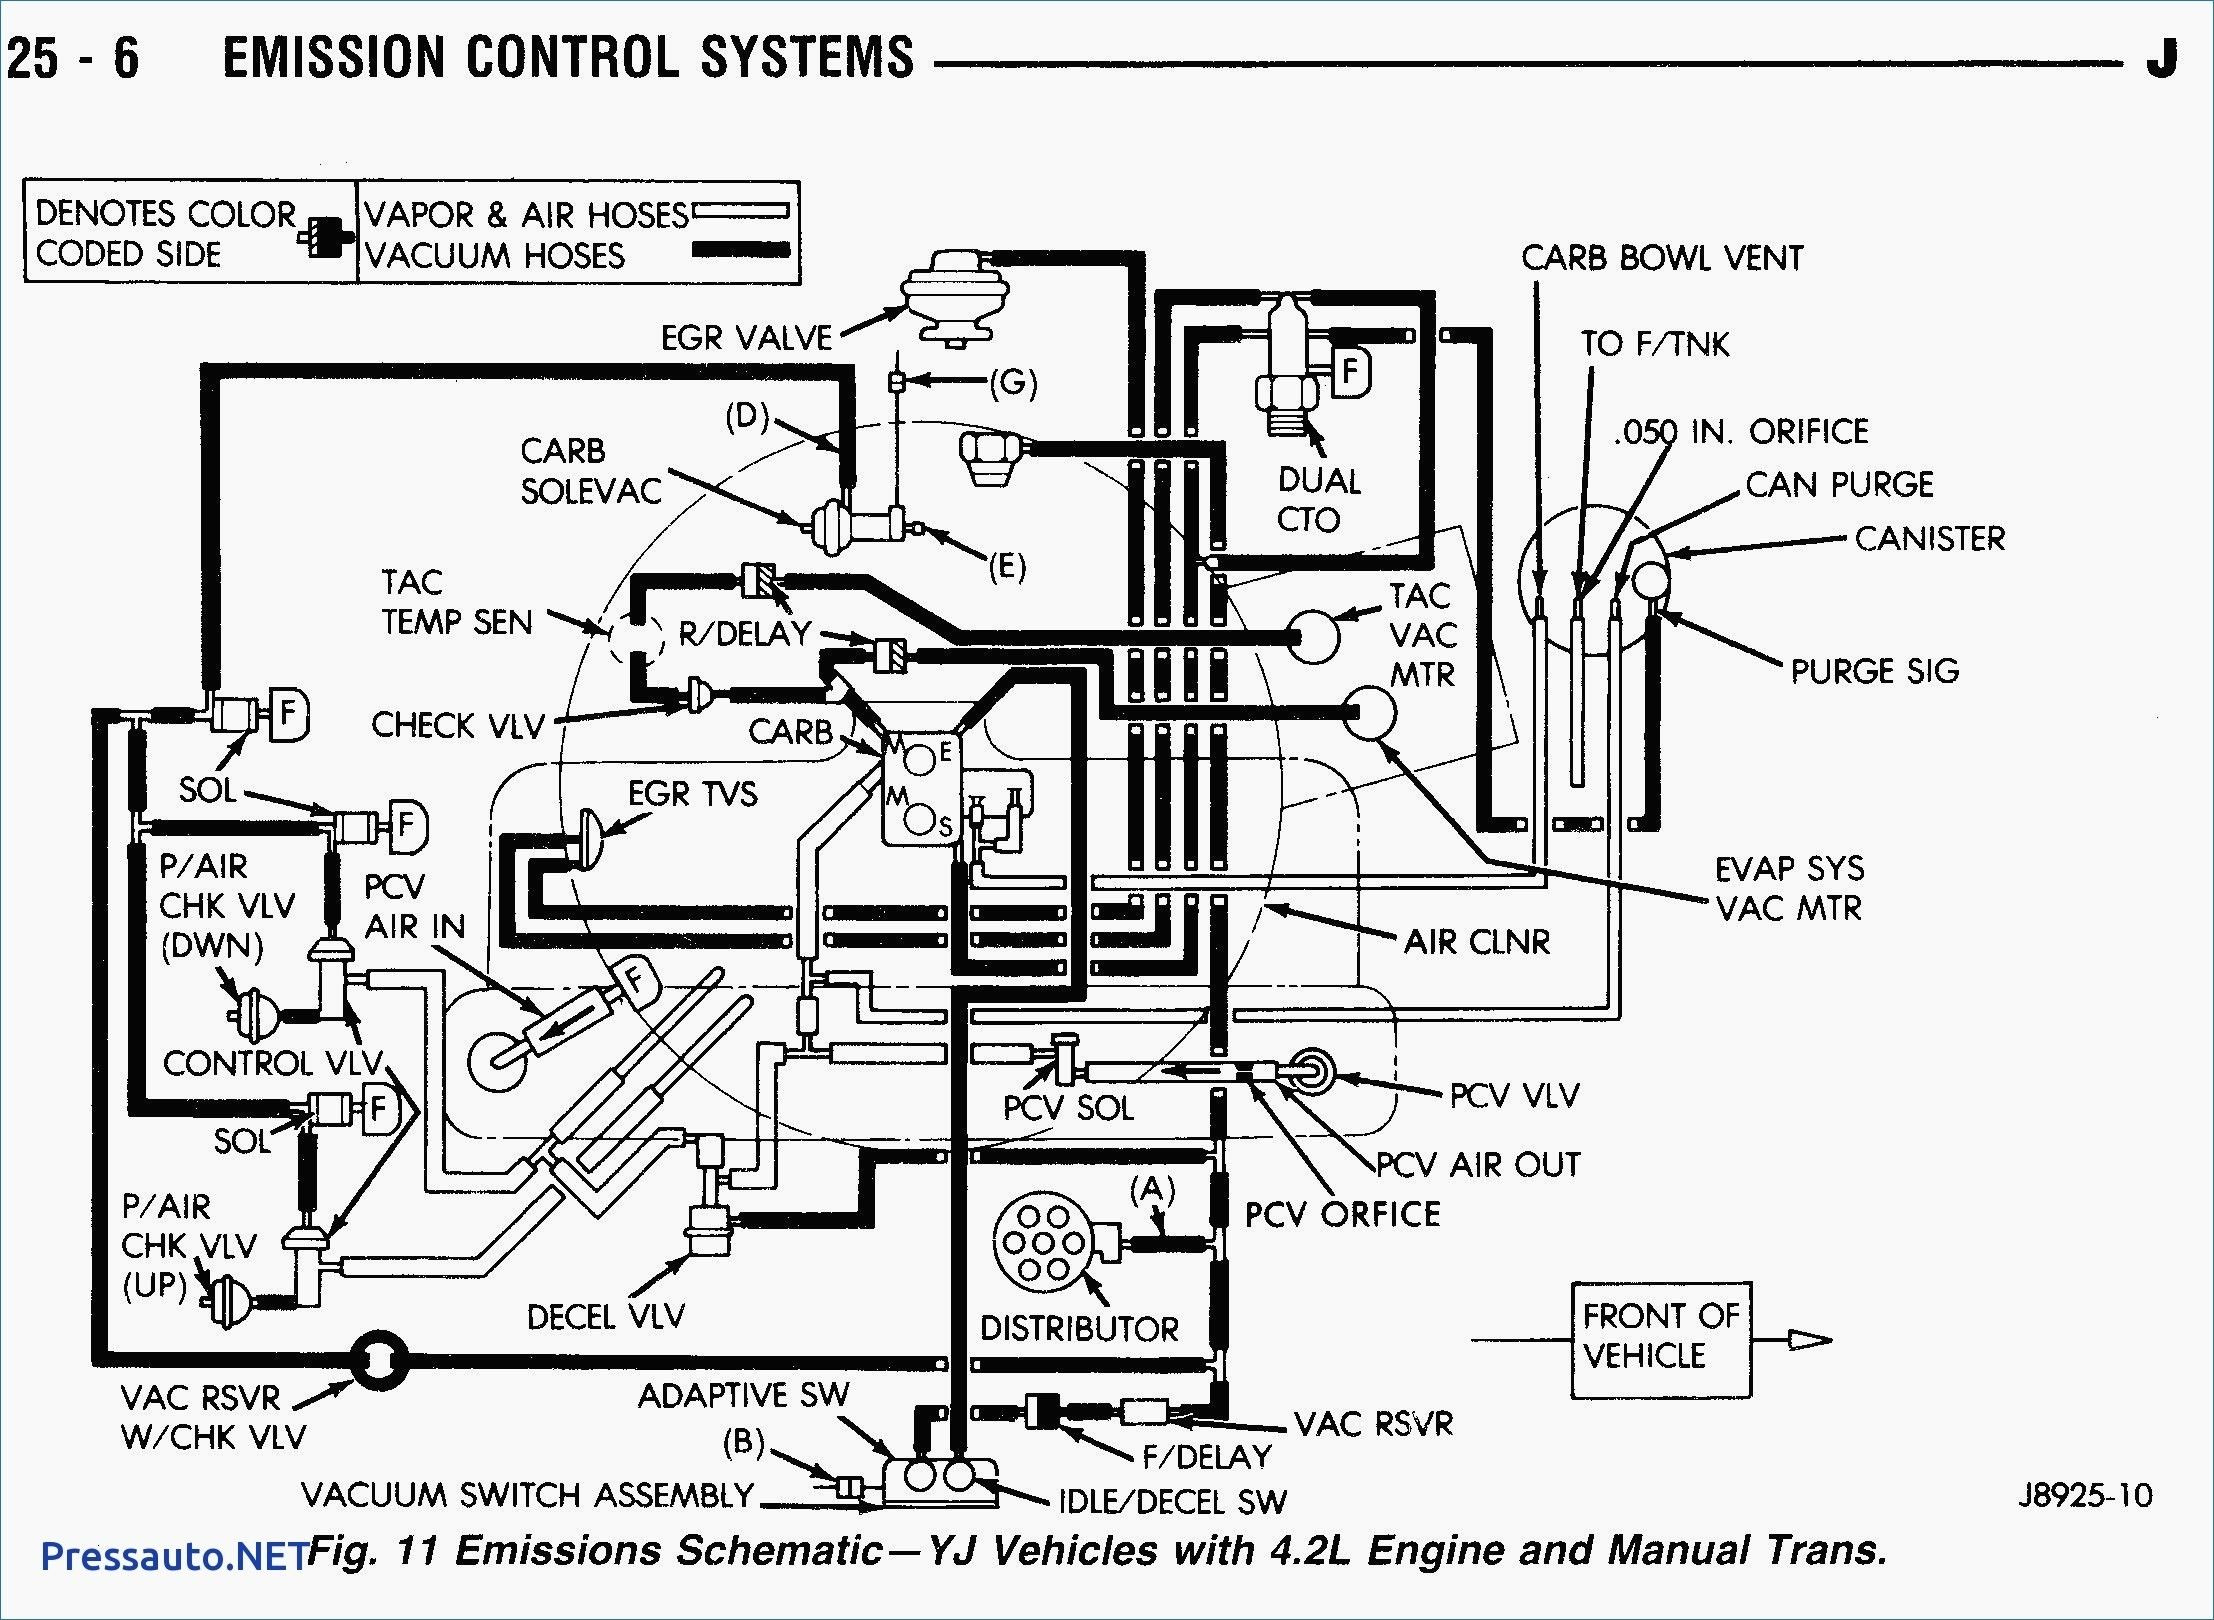 small resolution of 1989 jeep yj engine diagram data wiring diagram 1989 jeep cherokee vacuum line diagram 1989 jeep wrangler yj ignition